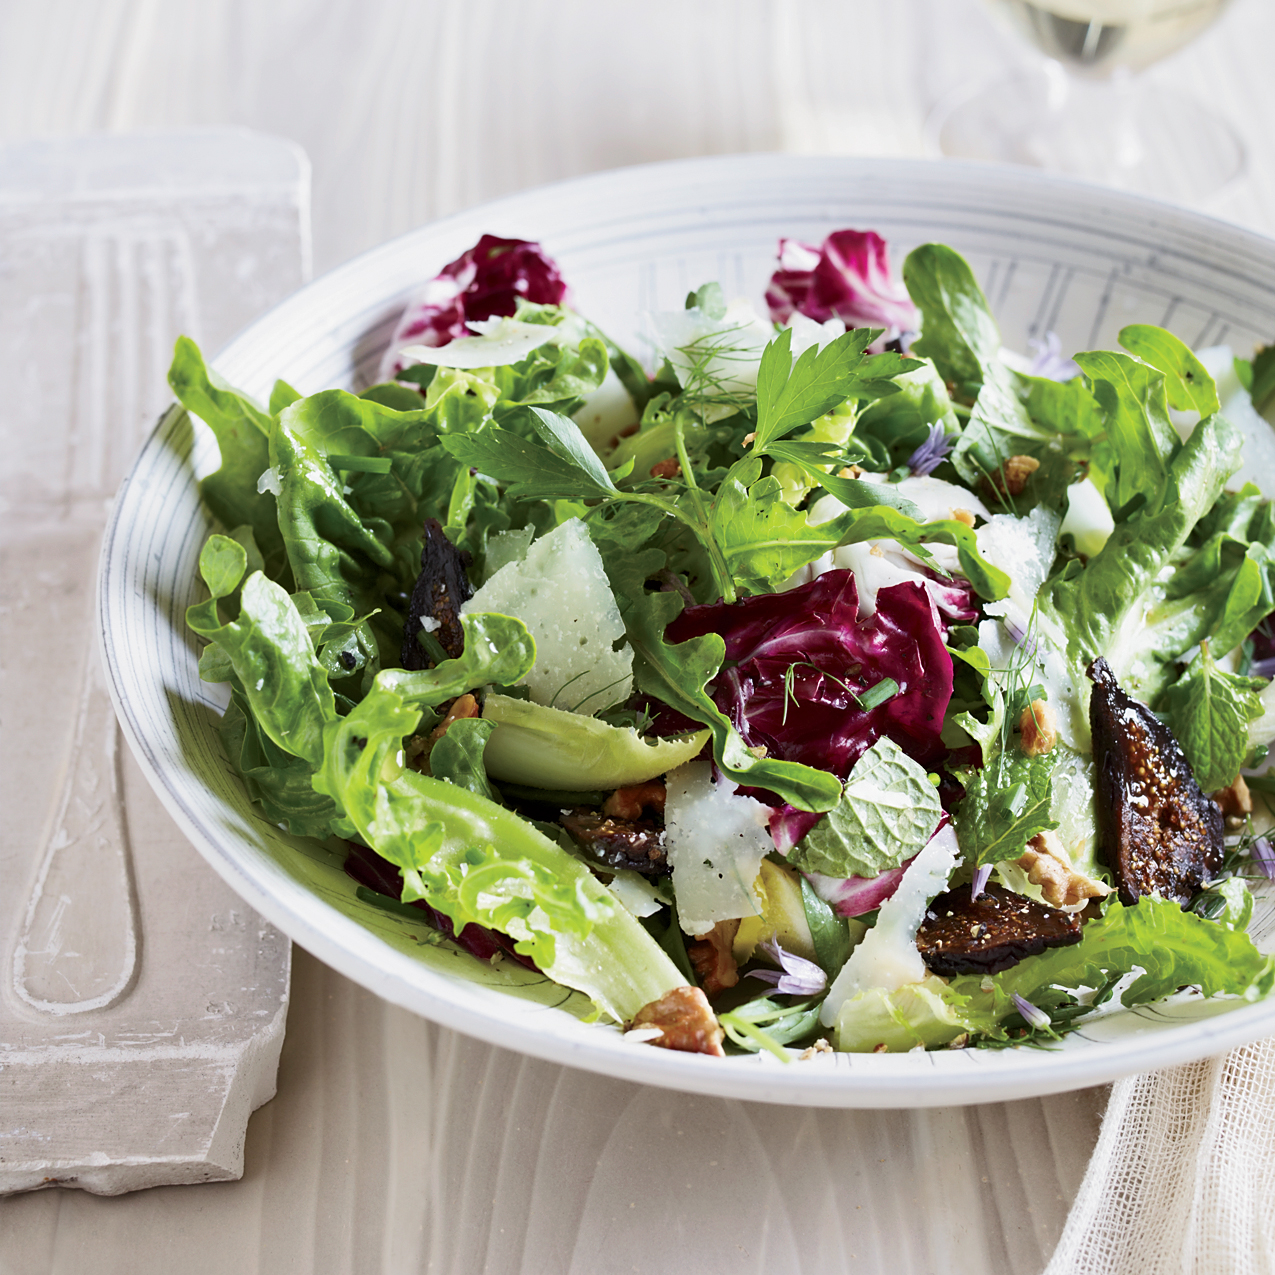 Herb Salad w/Walnuts, Figs & Sherry Dressing. A110525 Food & Wine. Well Being/Chef Recipes Made Easy. September 2011